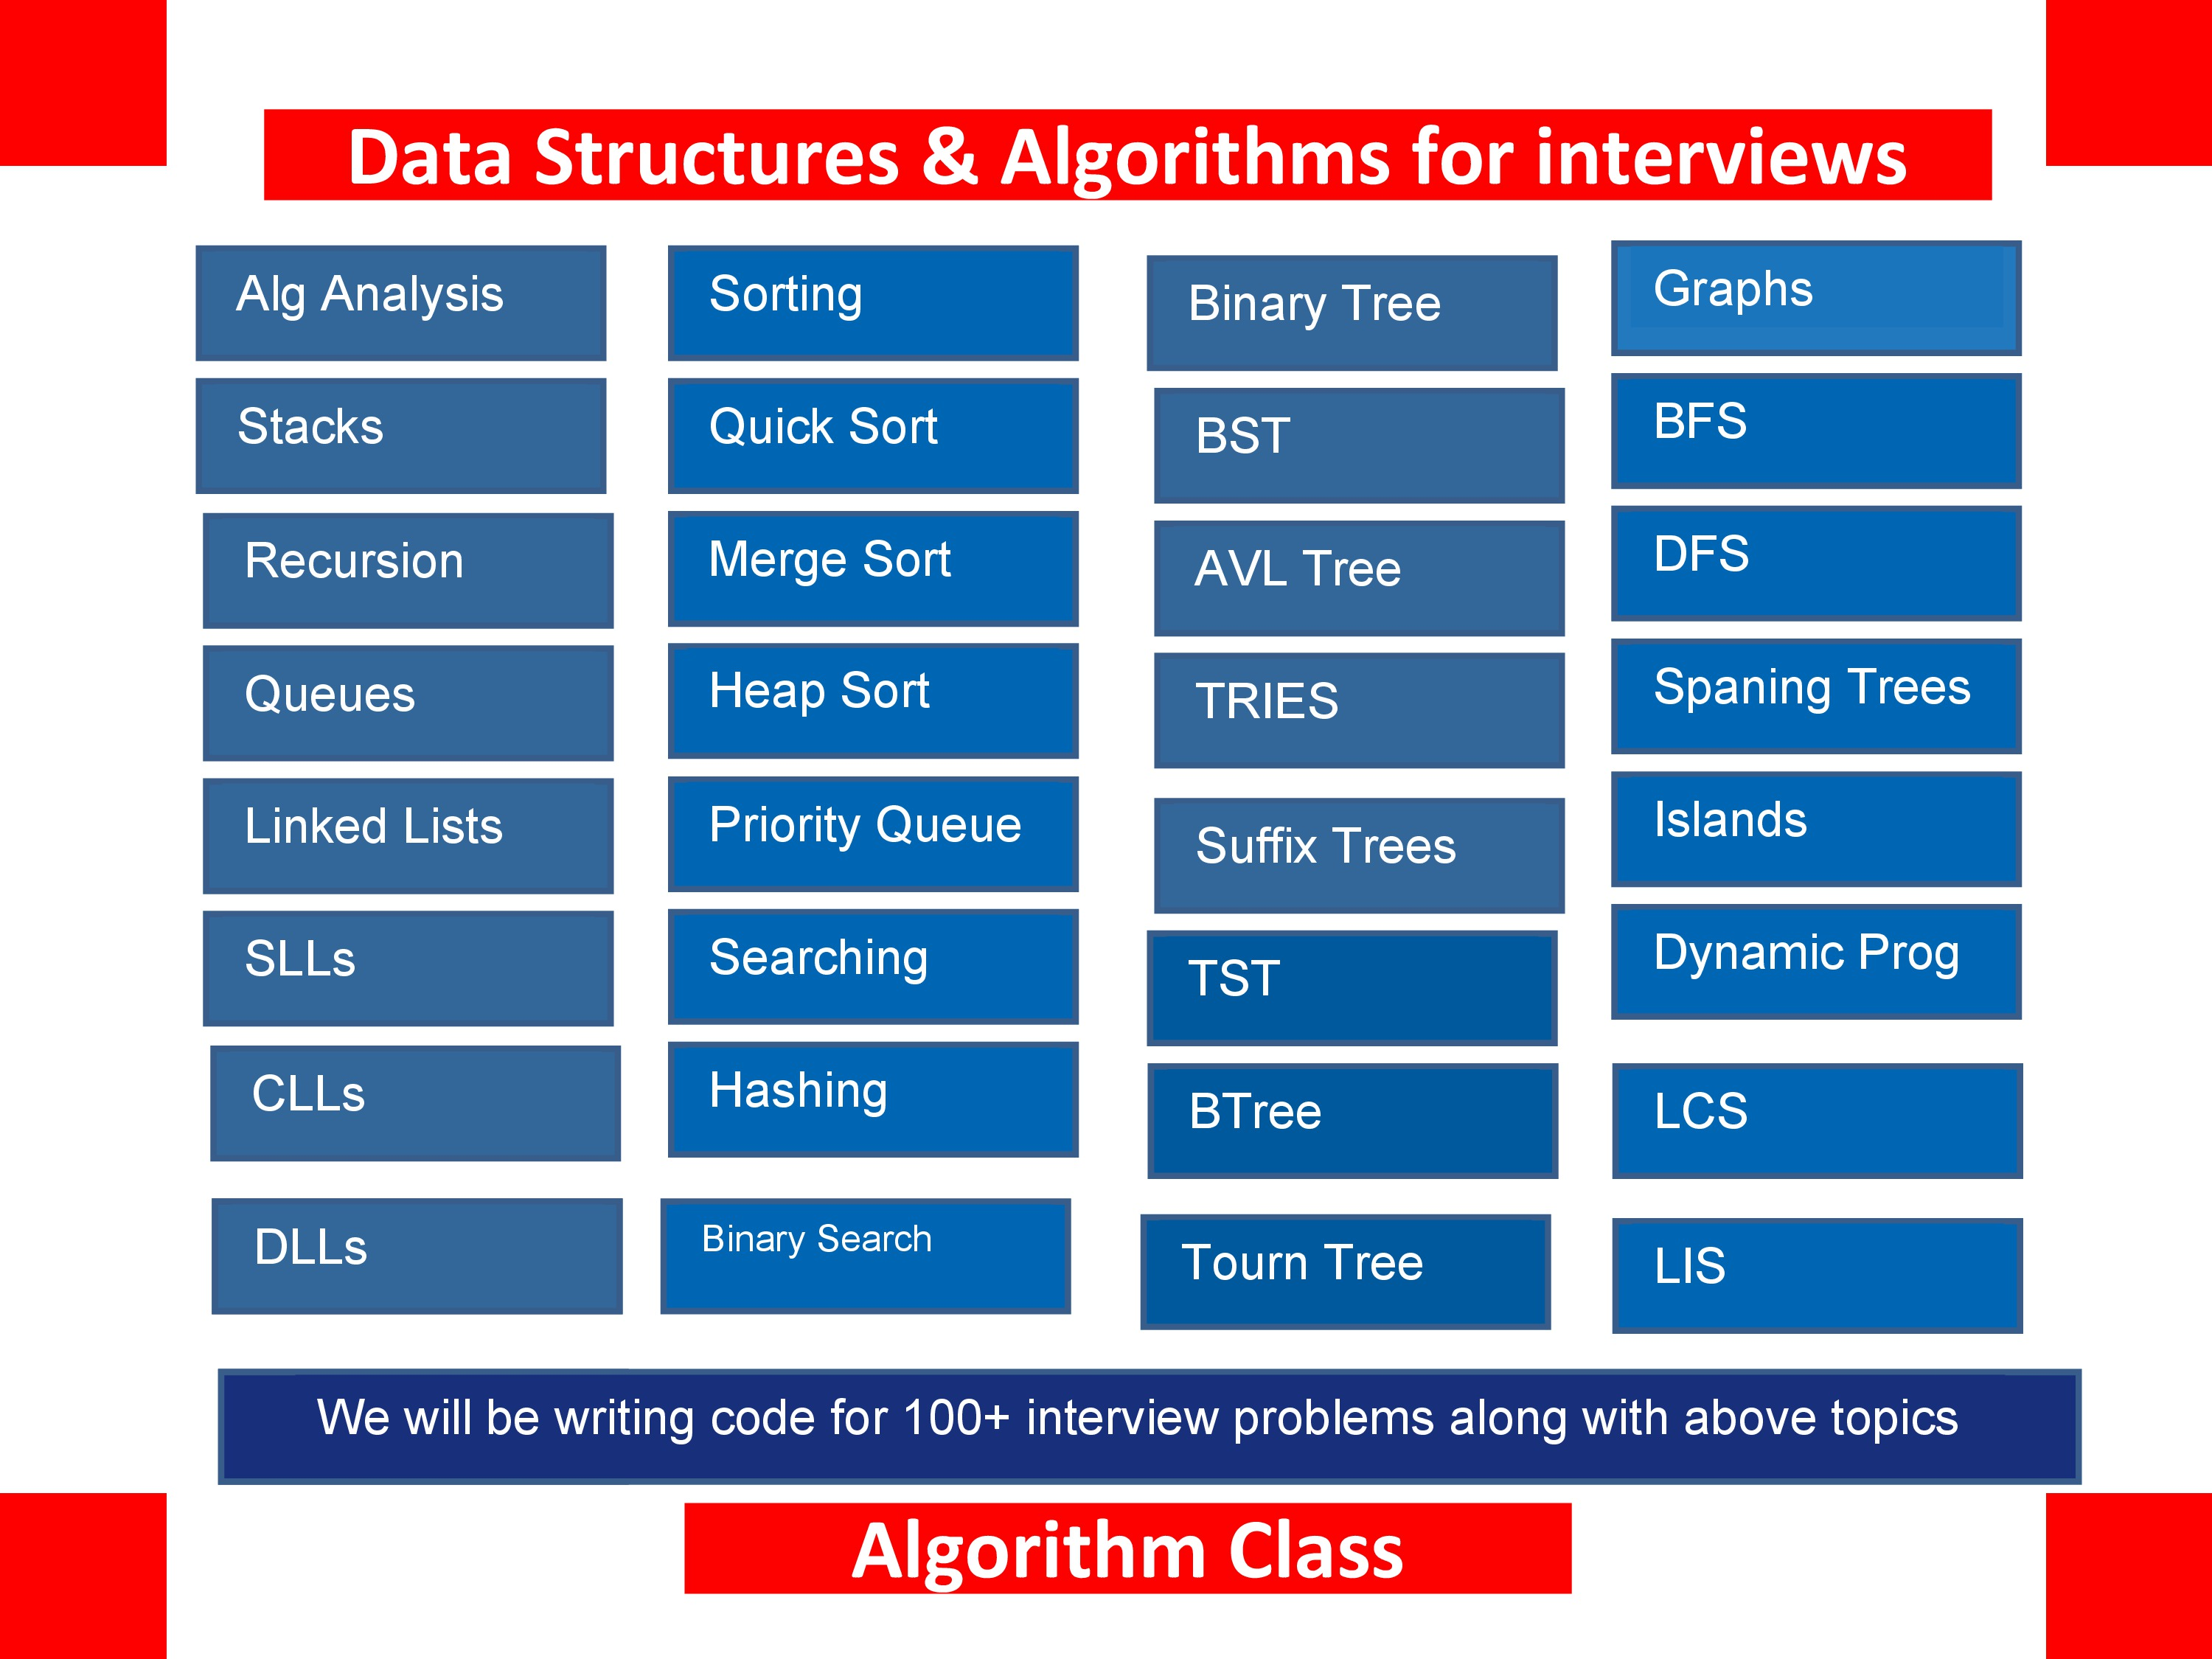 Data Structures and Algorithms Hyderabad by Algorithm Class